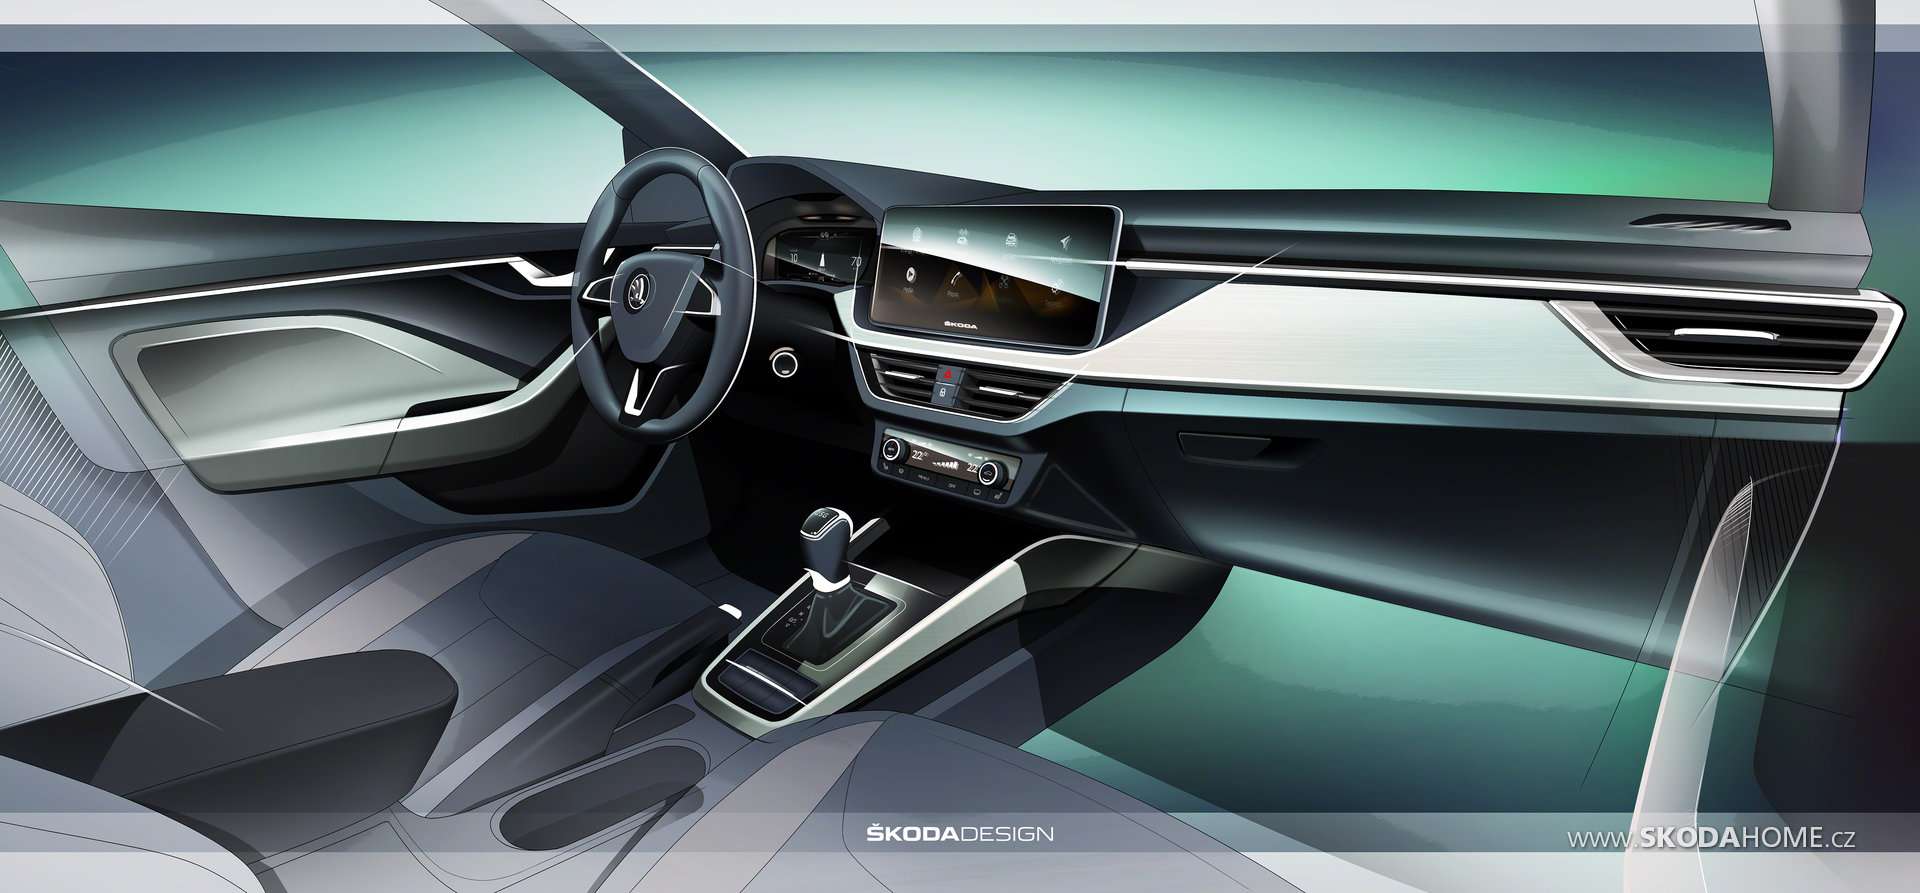 skoda-scala-interior-design-sketch.jpg